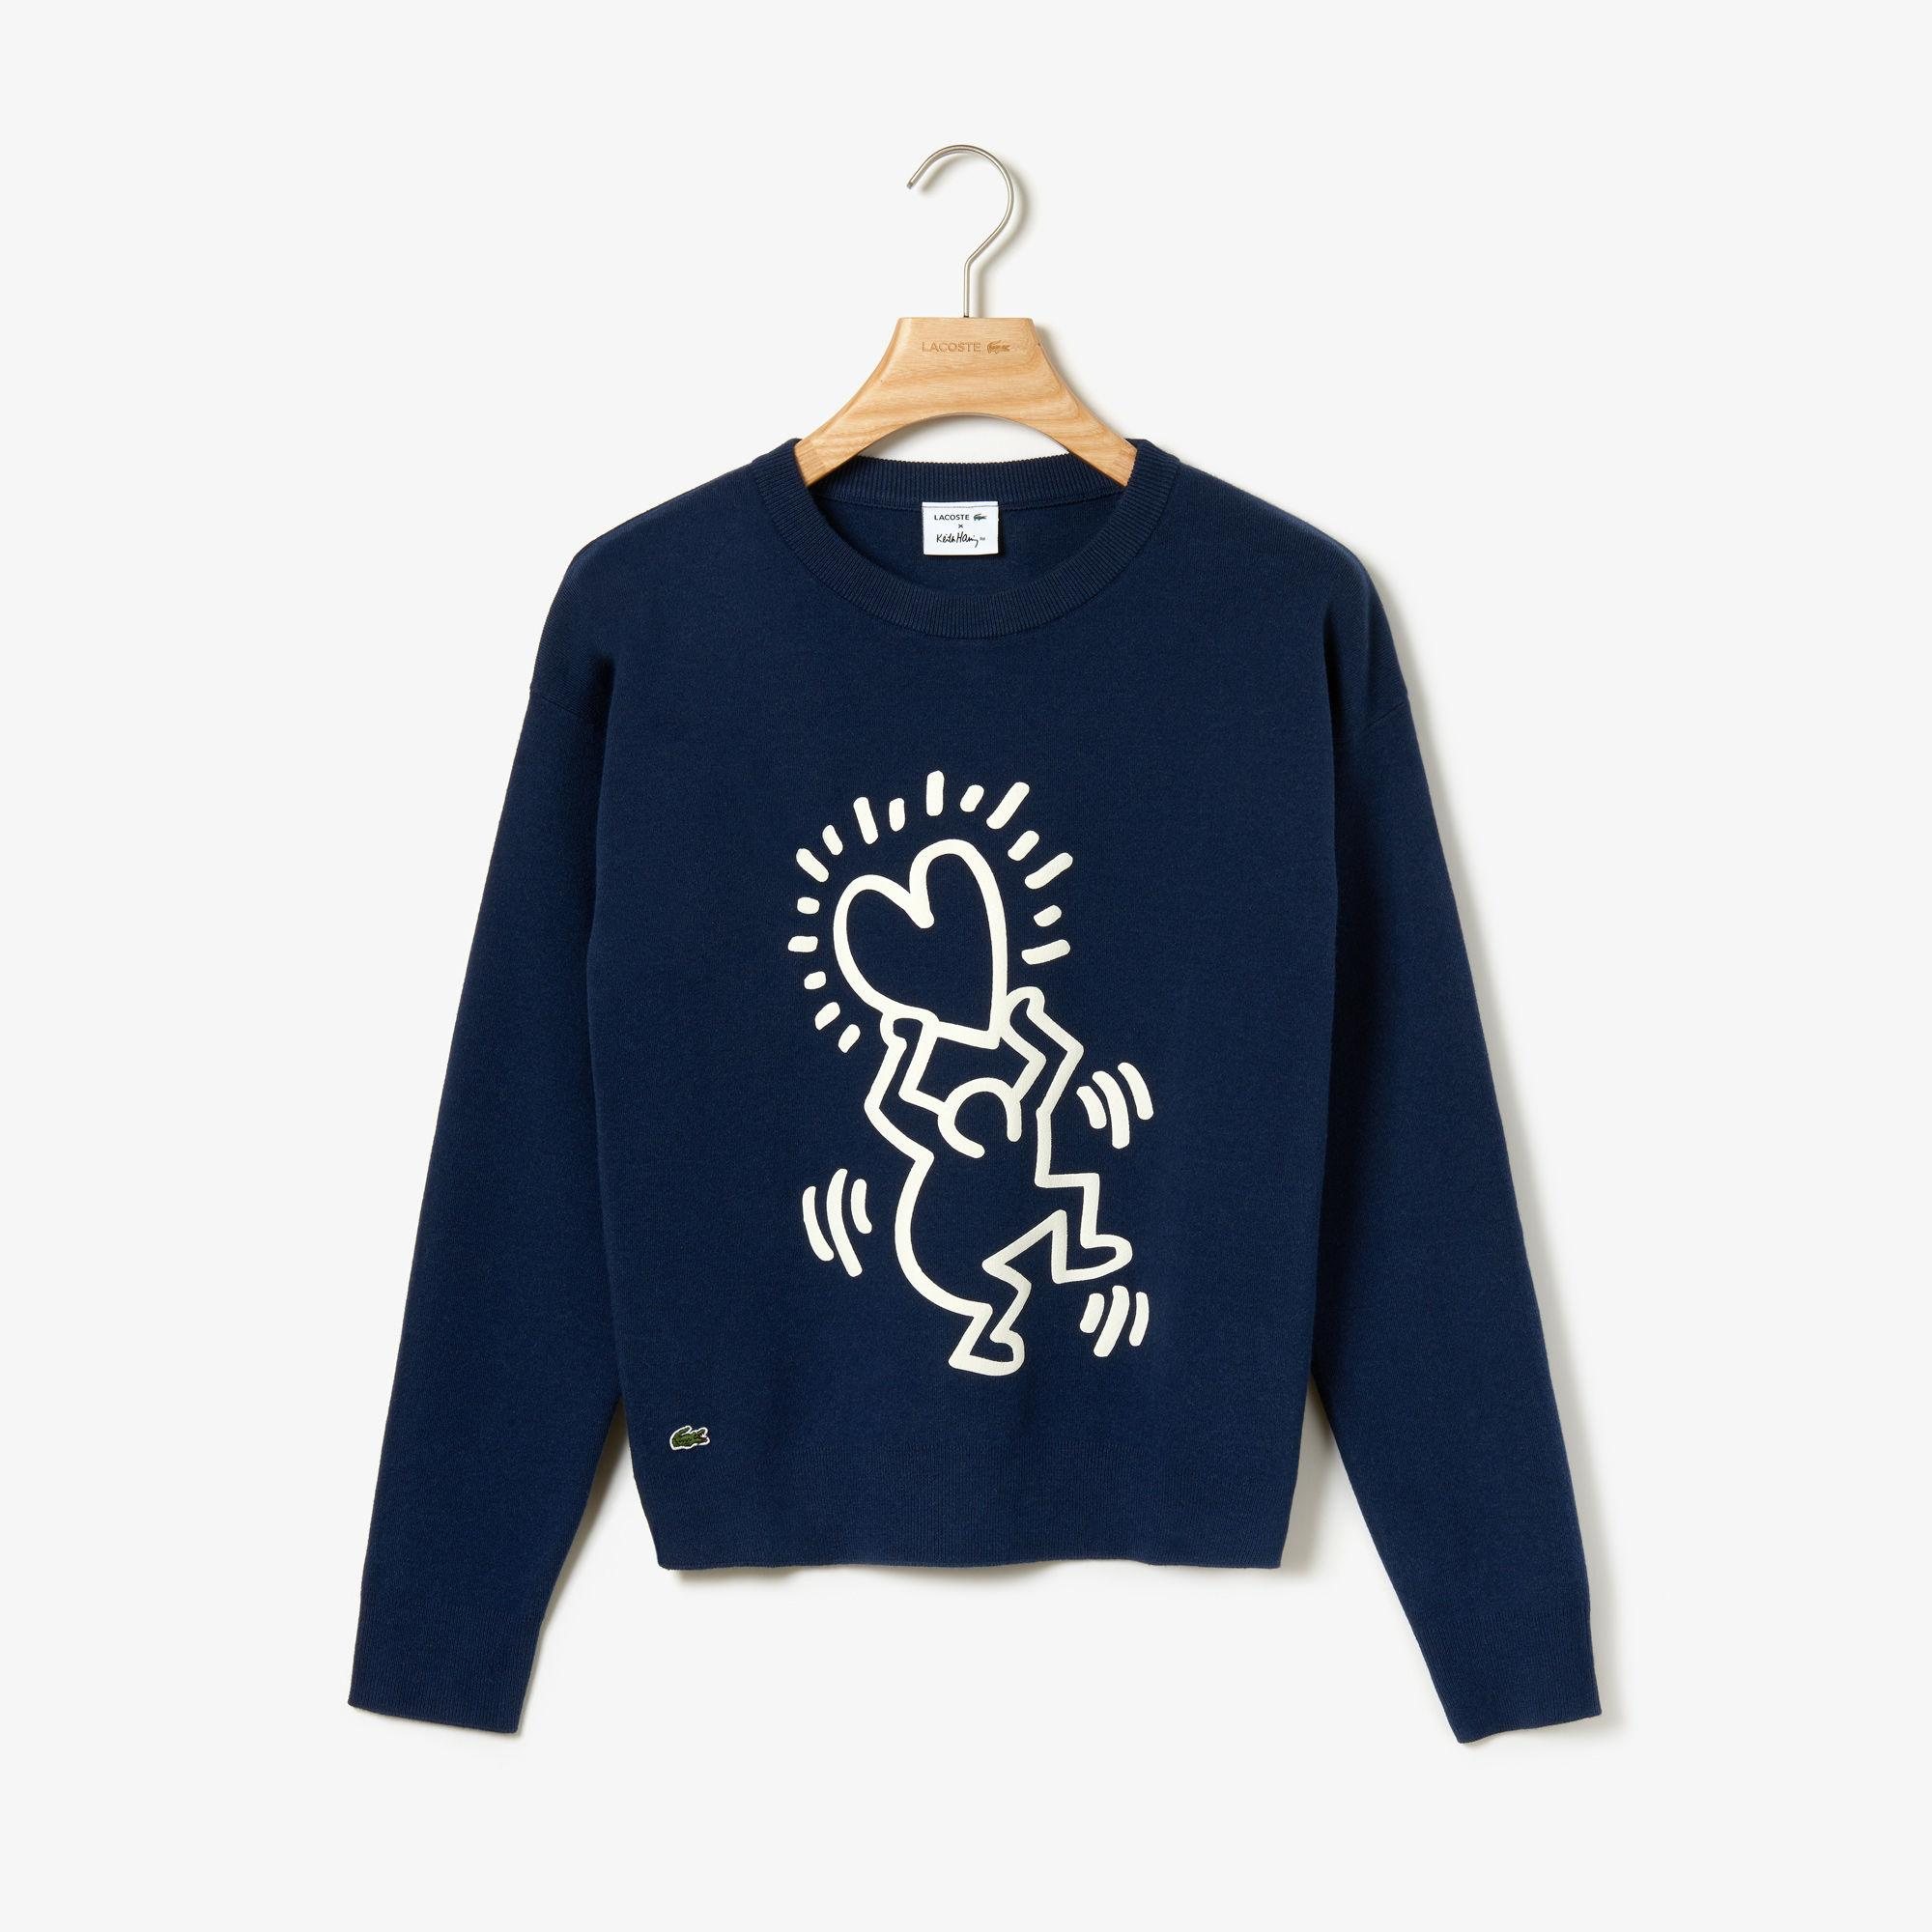 Lacoste X Keith Haring Women's Sweater